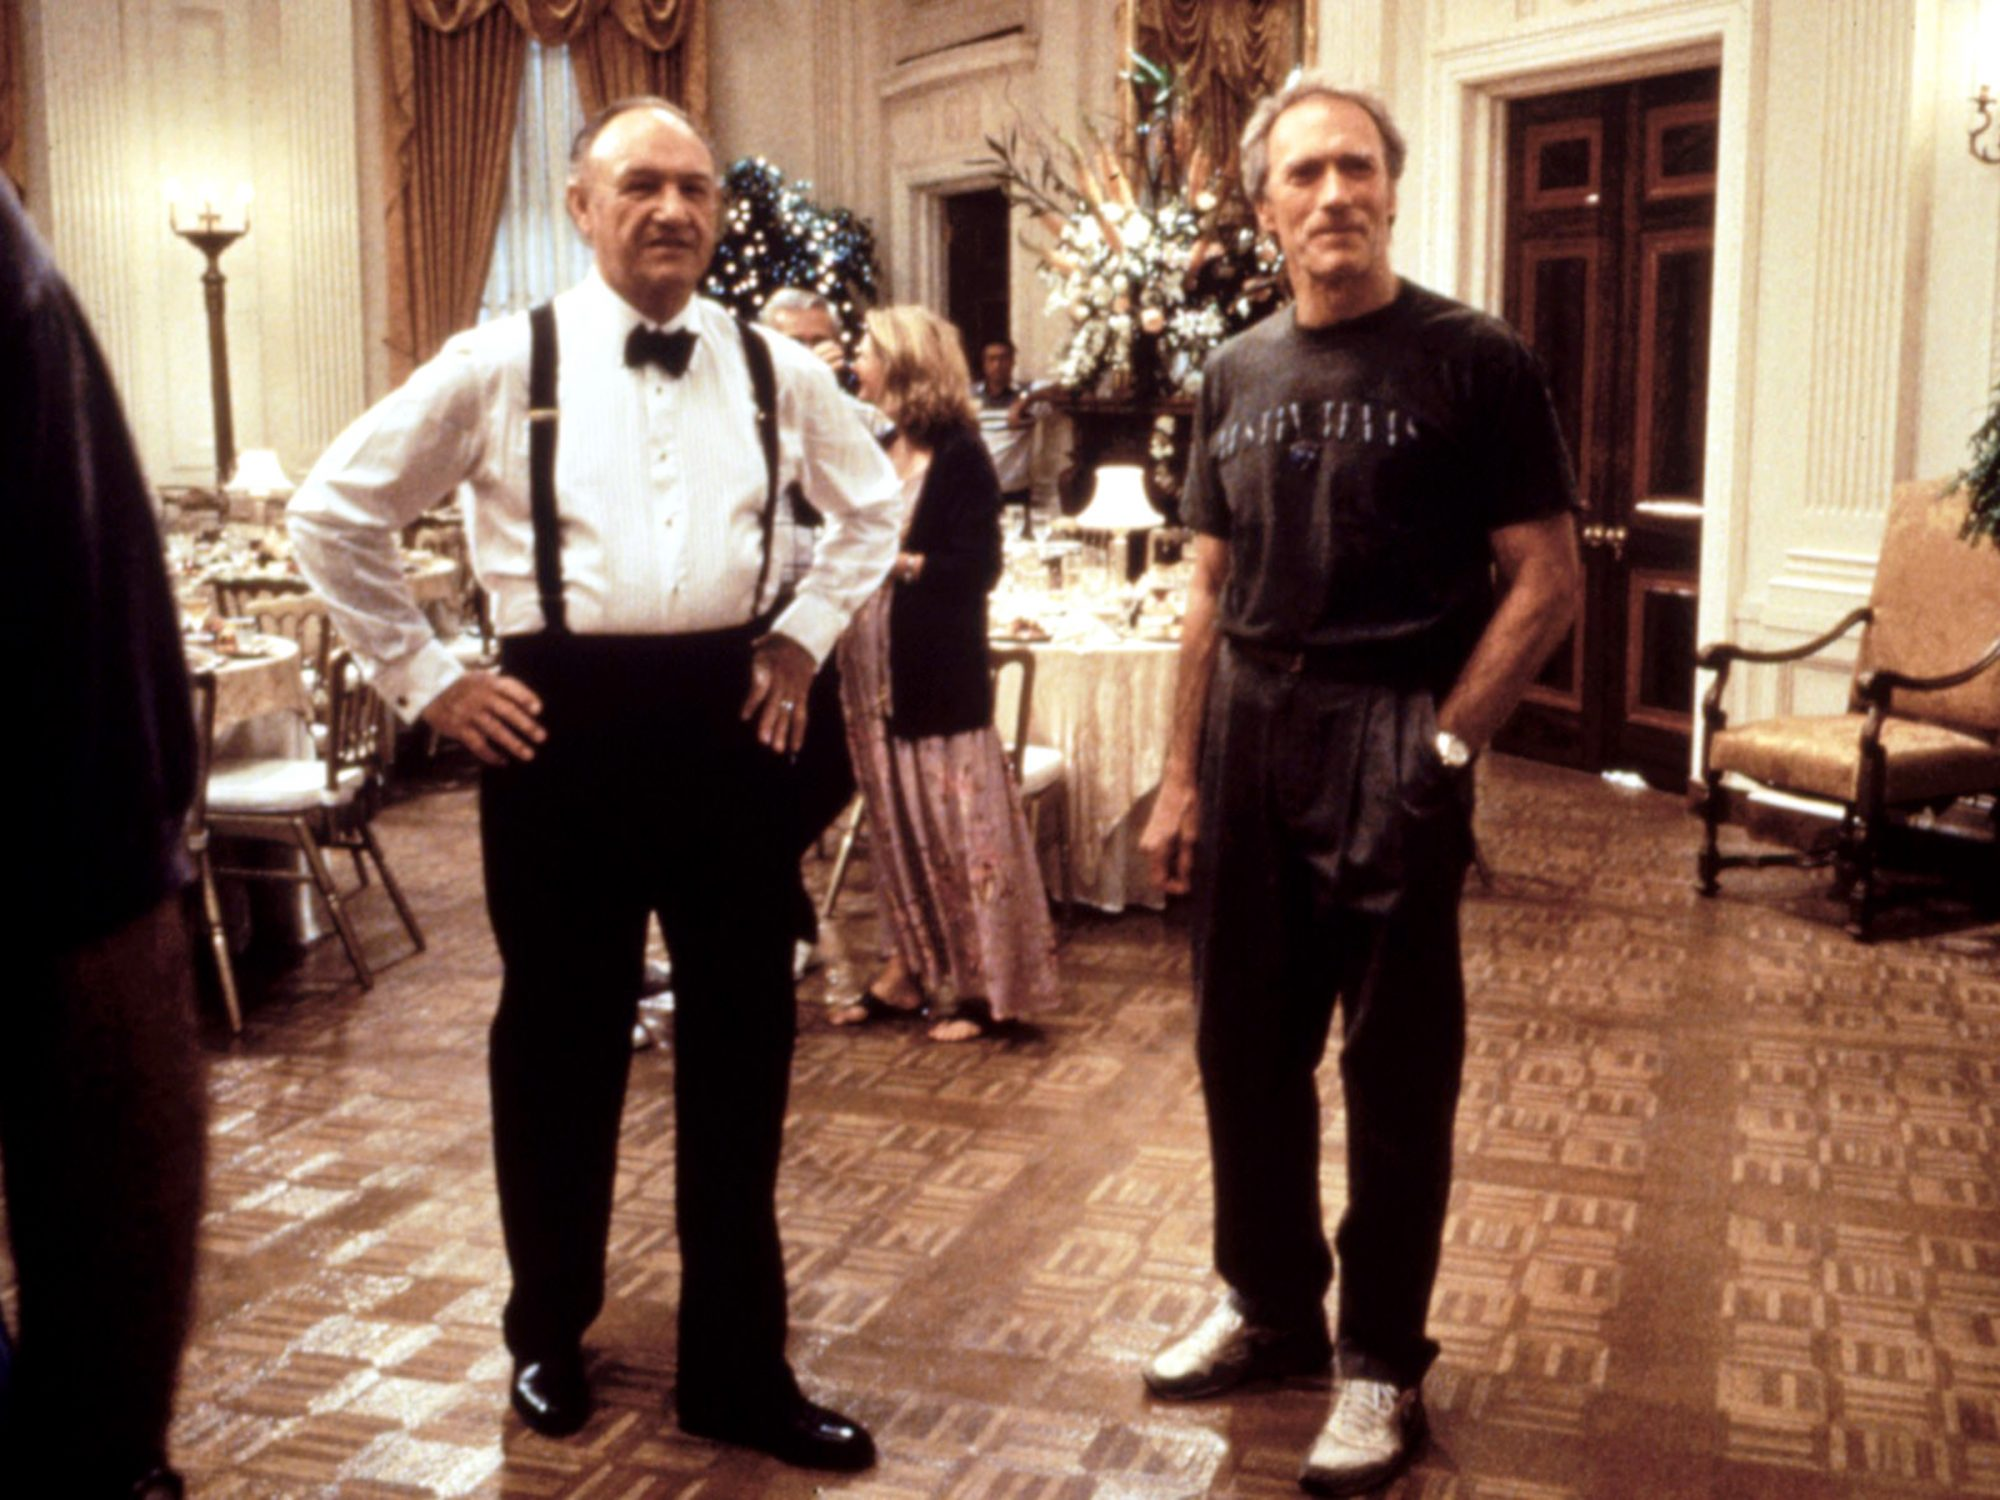 ABSOLUTE POWER, Gene Hackman and Clint Eastwood during shooting, 1997